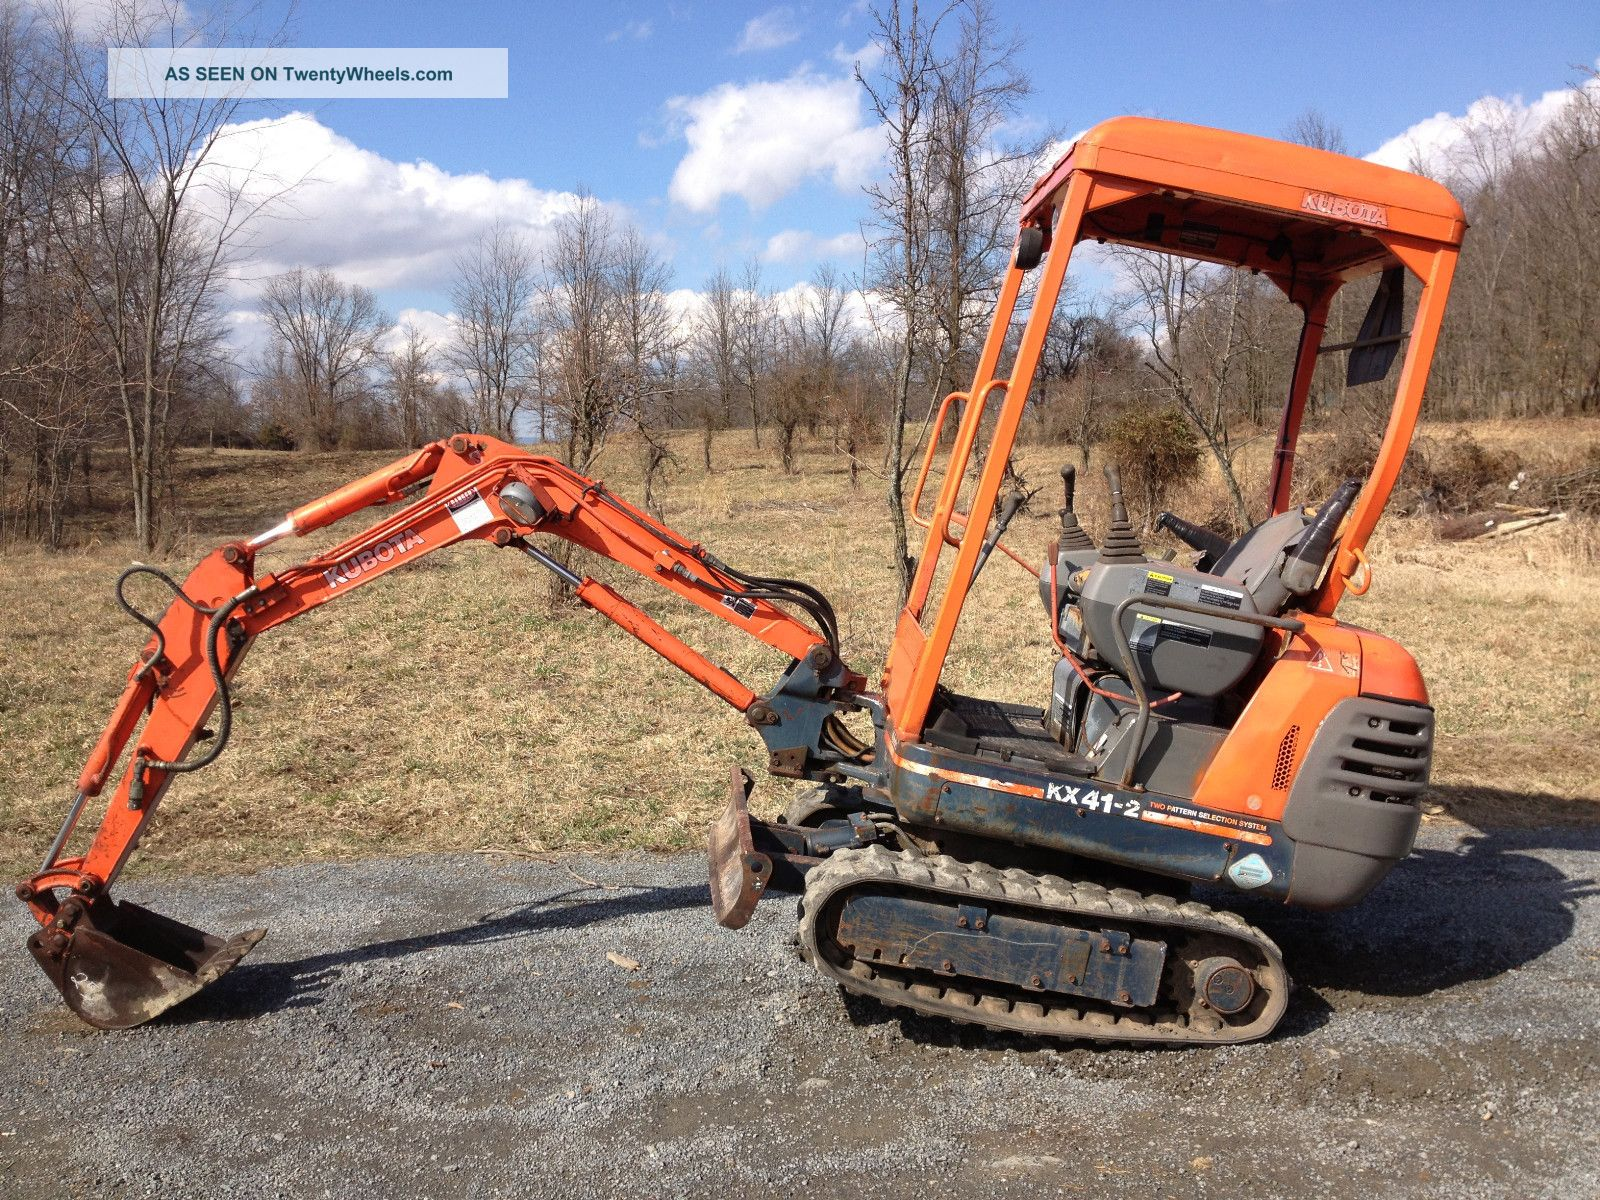 Kubota Kx41 - 2 Mini Excavator Rubber Track Backhoe / Trencher Excavators photo